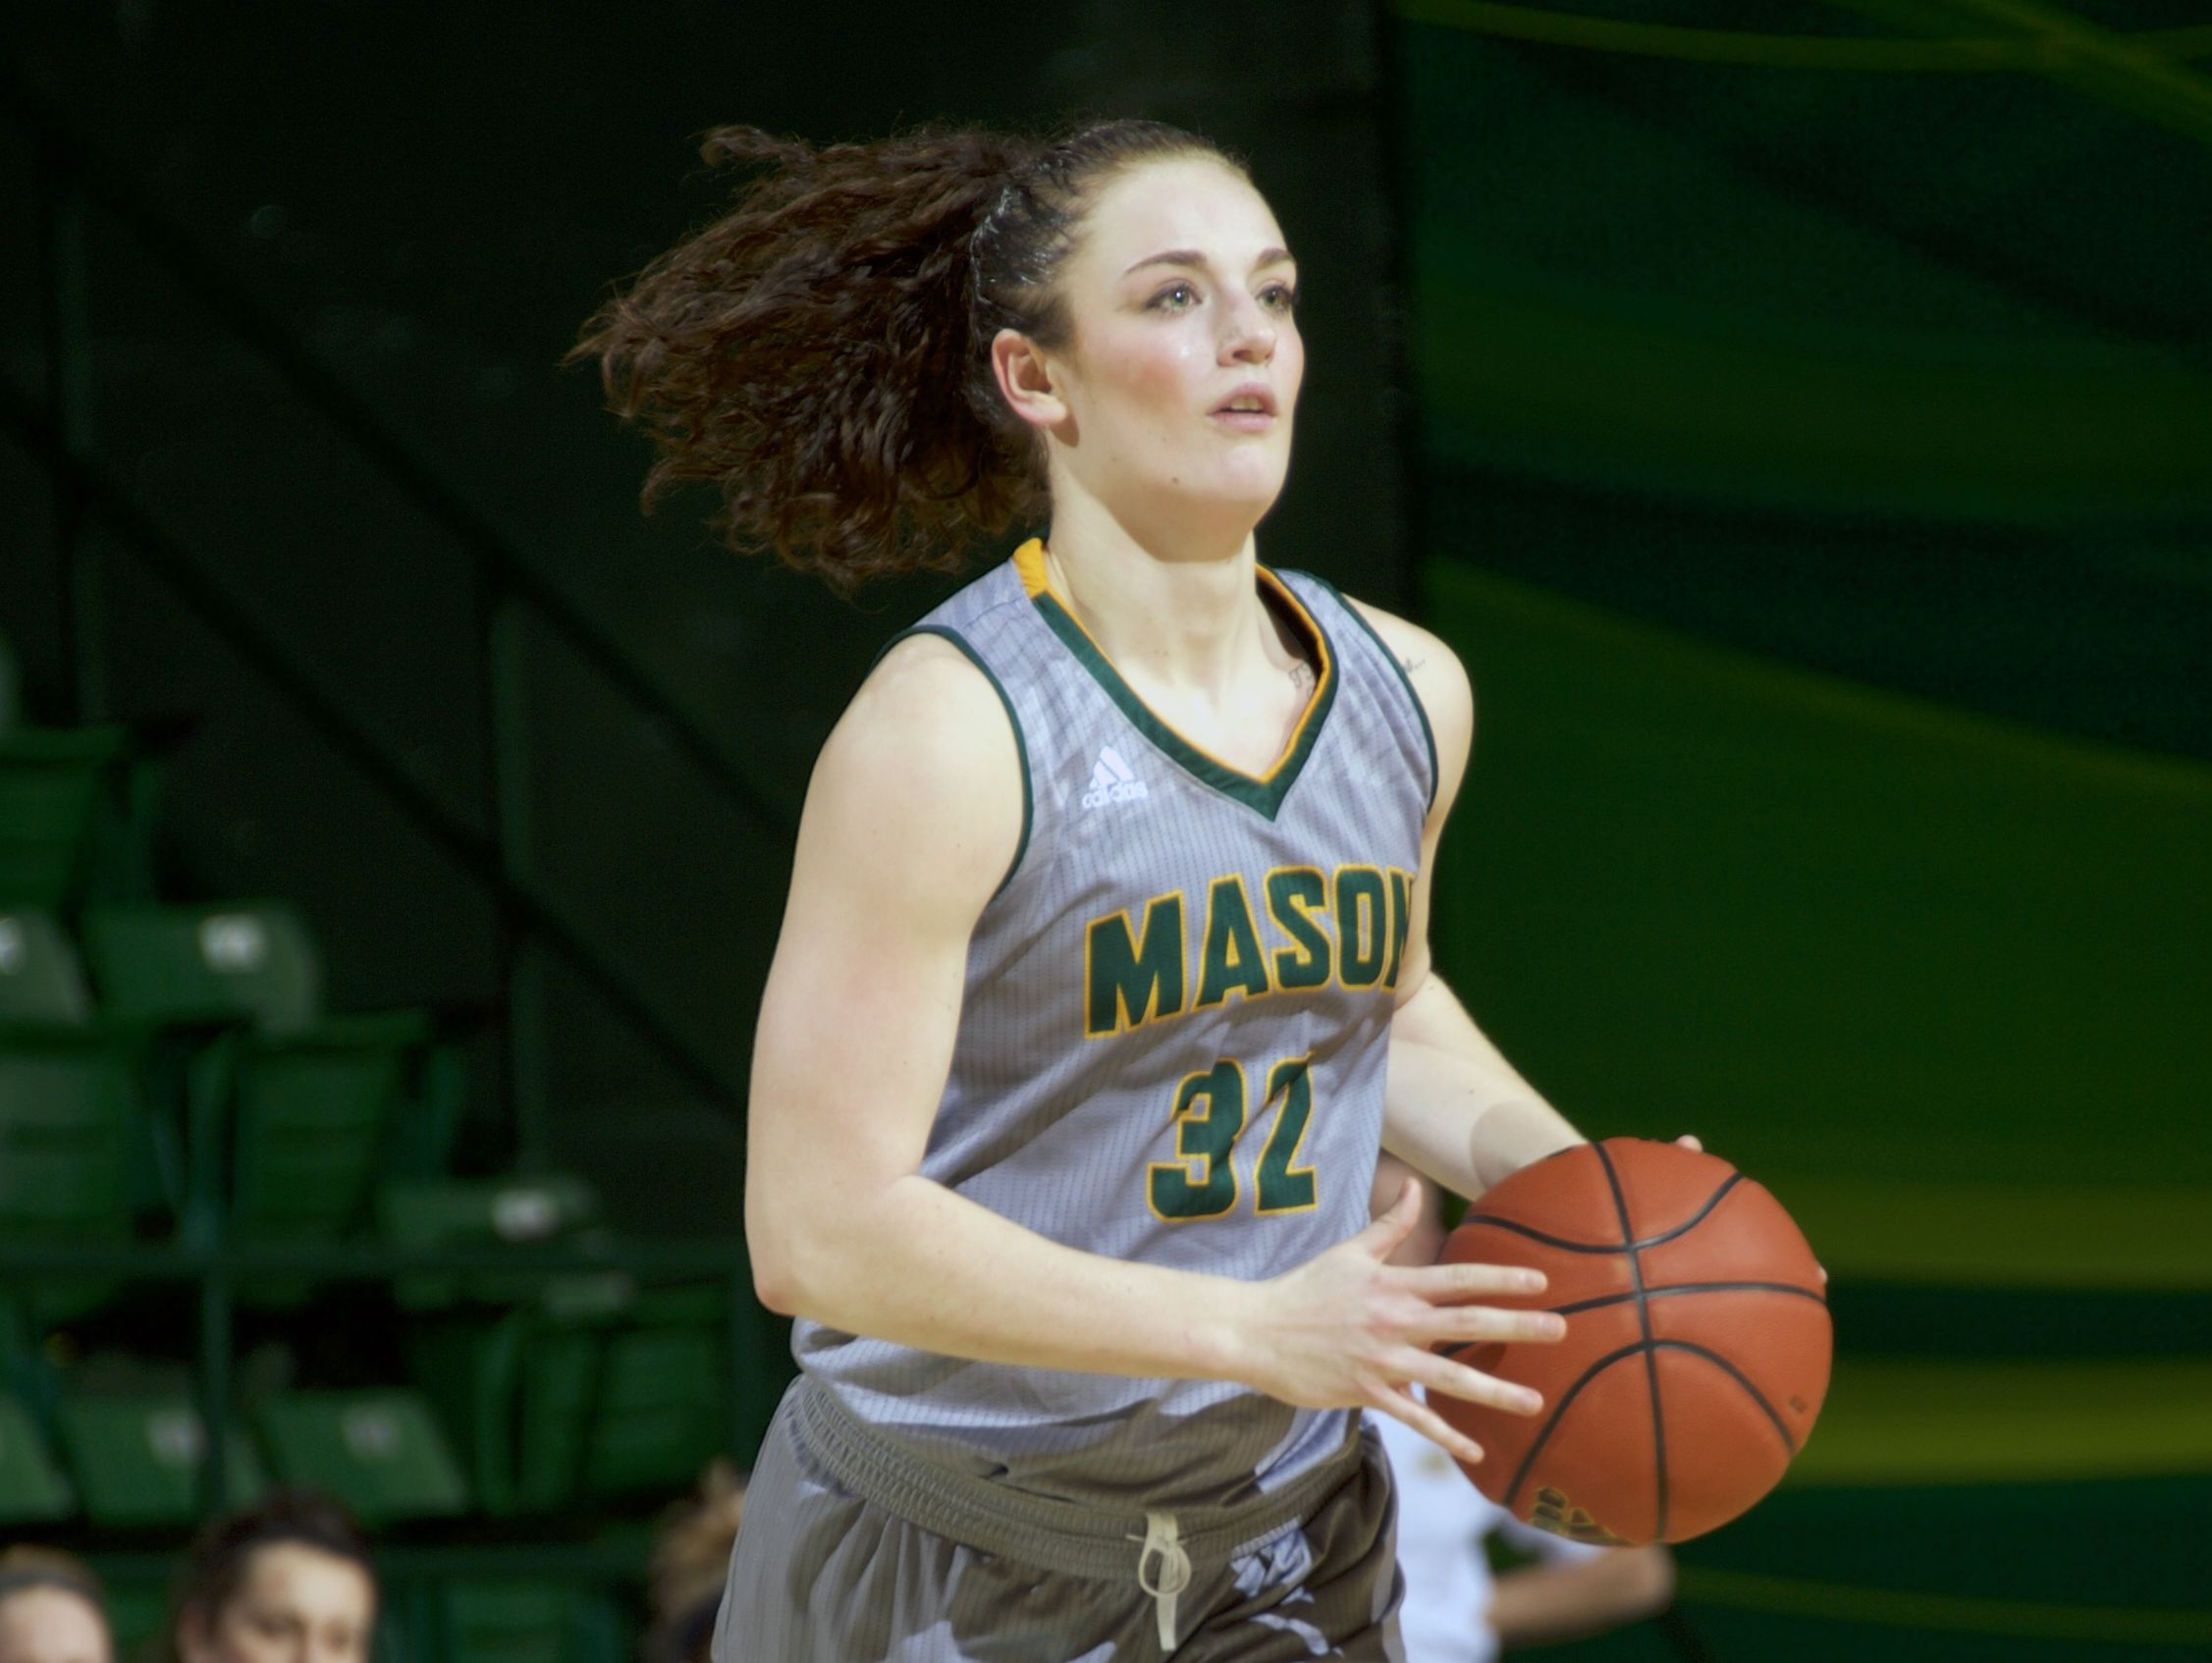 George Mason's Tayler Dodson, a former Spotswood High School standout, played for Washington, D.C-based Team Takeover in the summer and she's adamant that her grassroots experience got her a Division I scholarship.